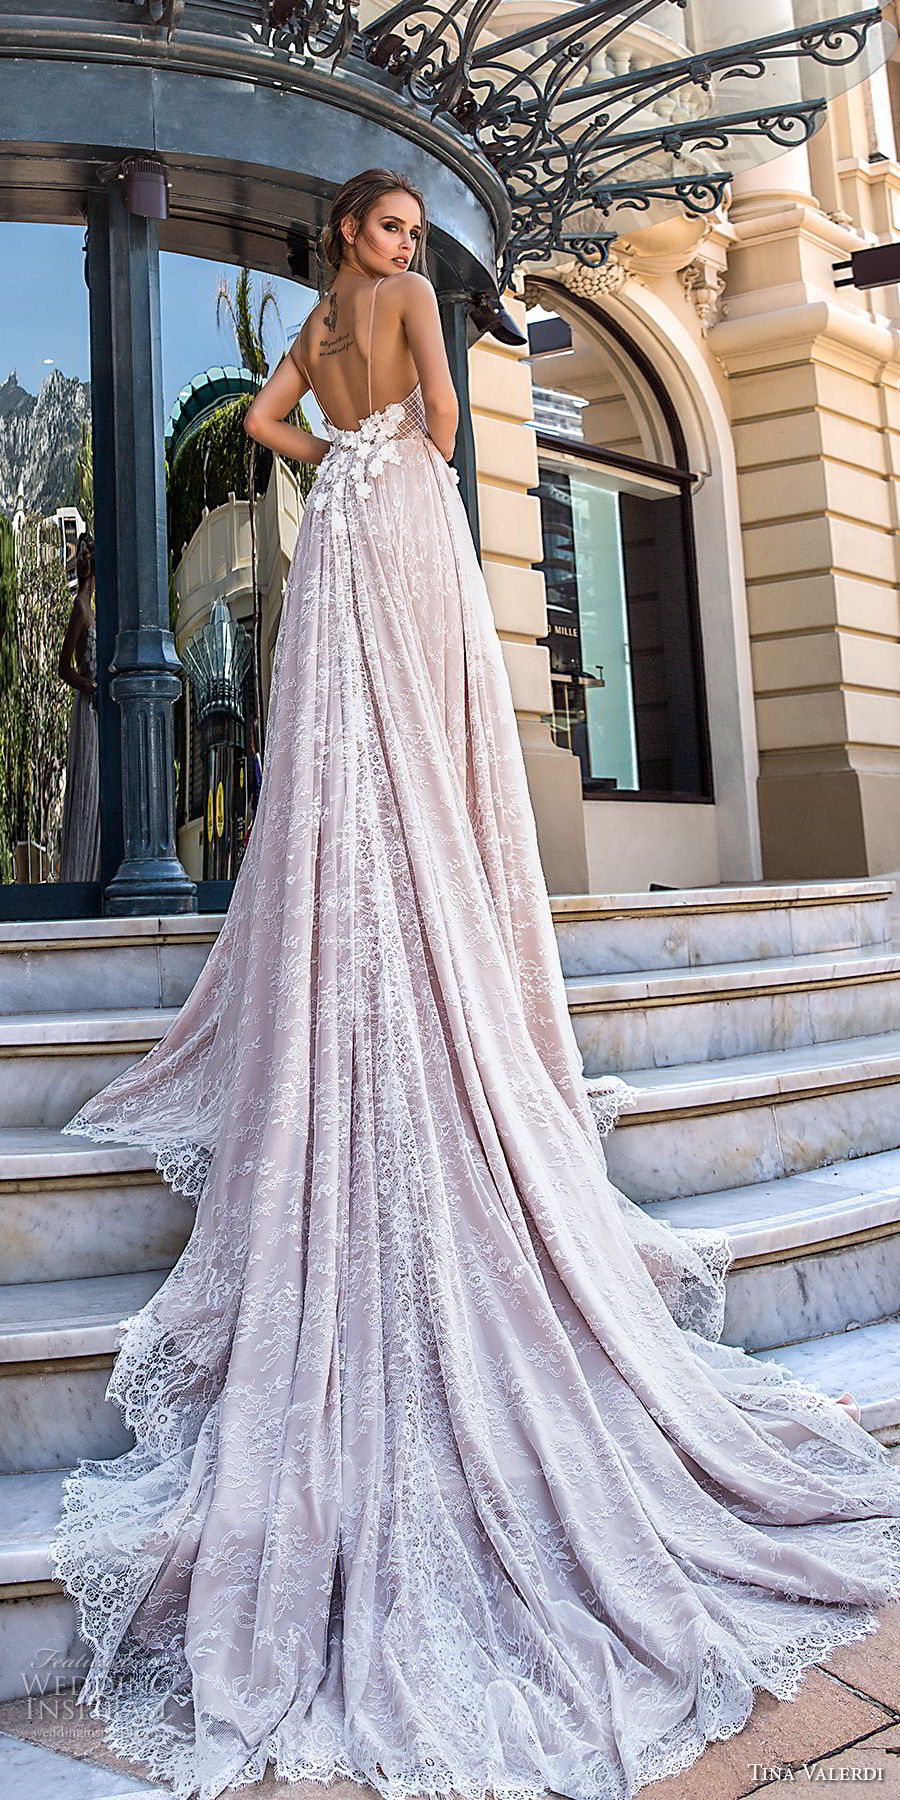 tina valerdi 2019 bridal spaghetti strap sweetheart neckline full embellishment romantic blush modified a line wedding dress open back chapel train (15) bv